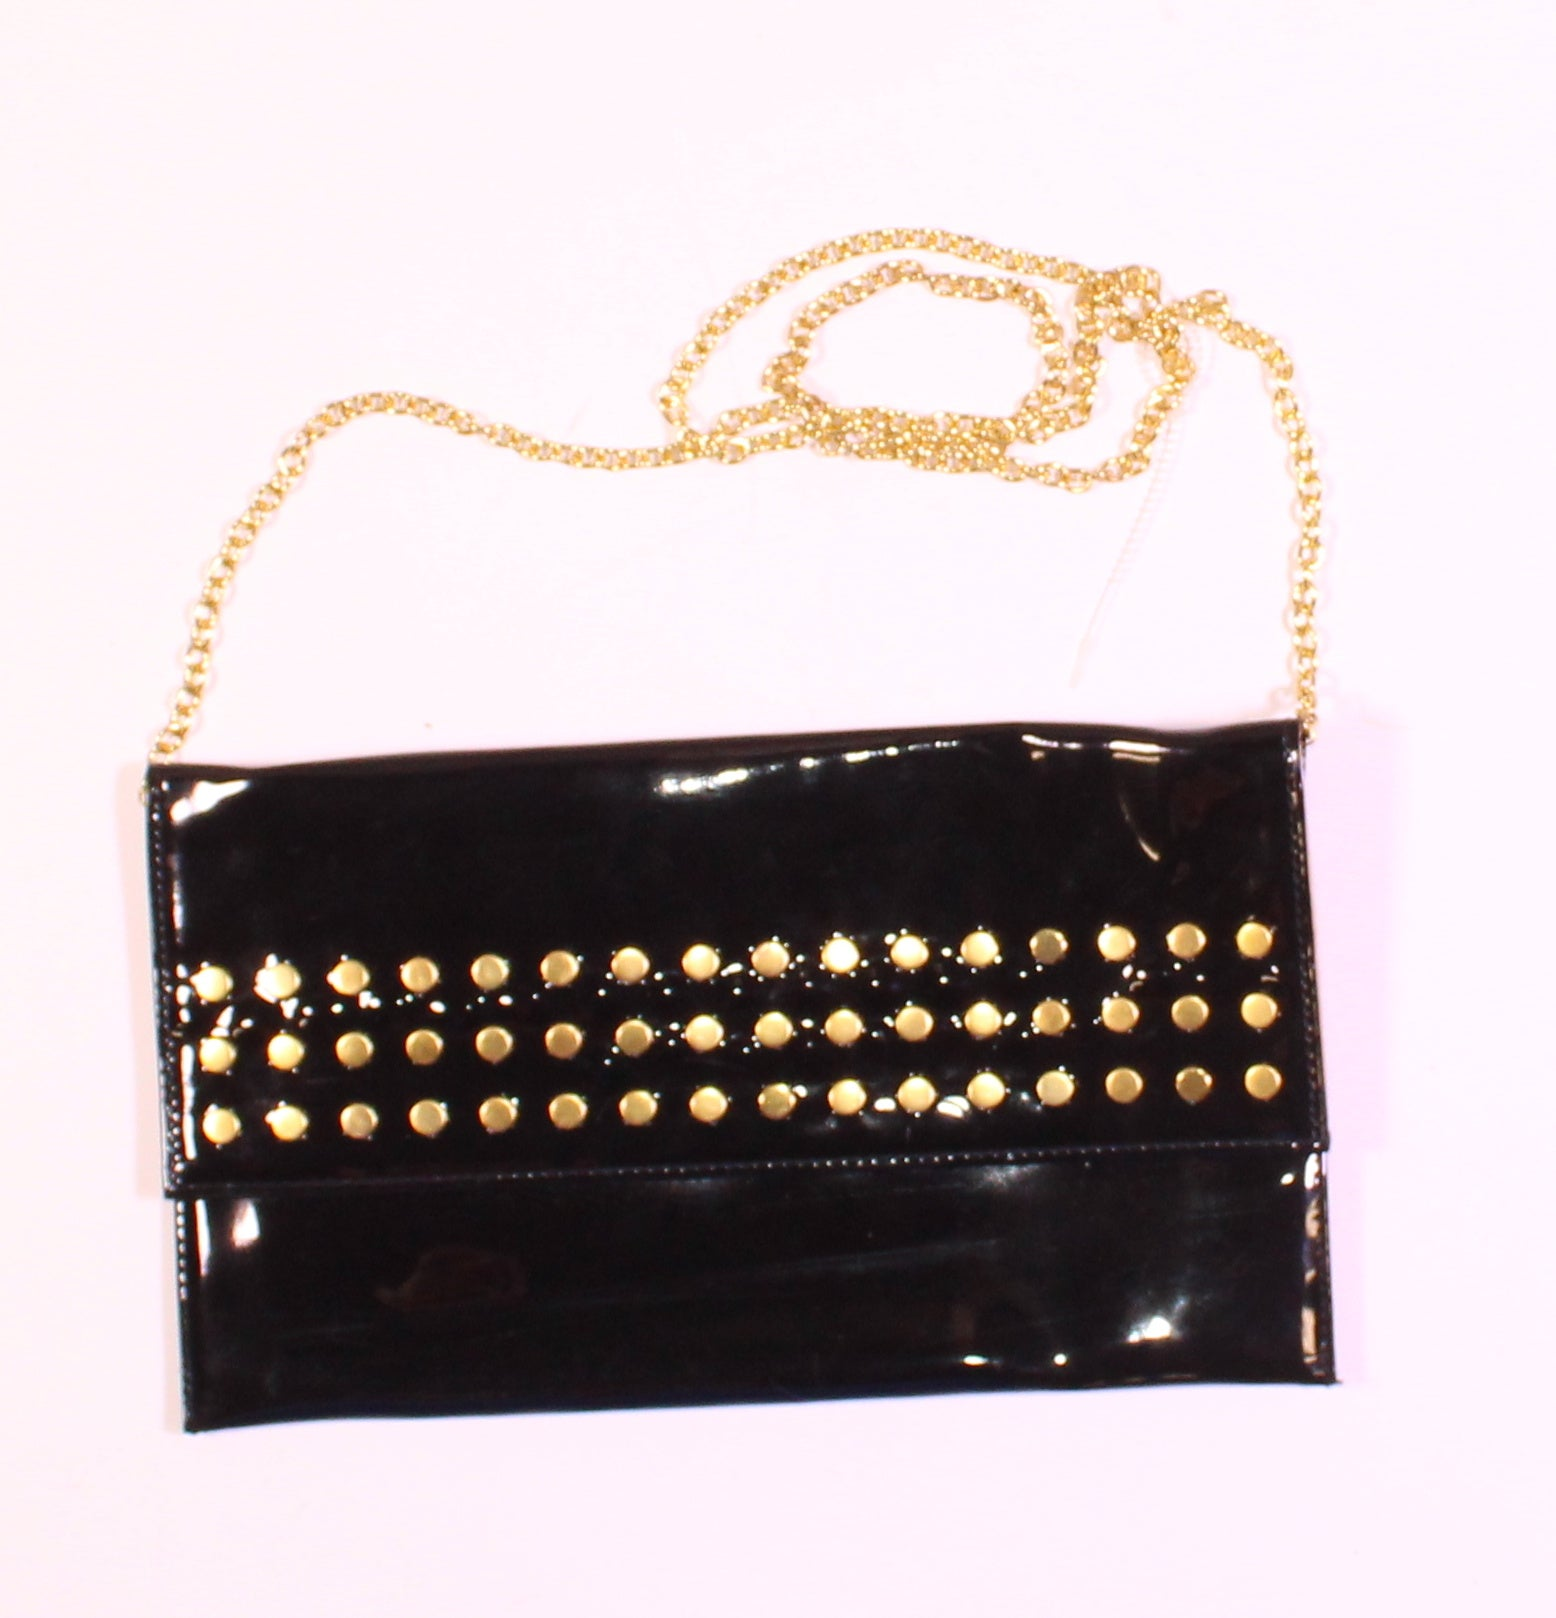 BLACK STUDDED PURSE VGUC